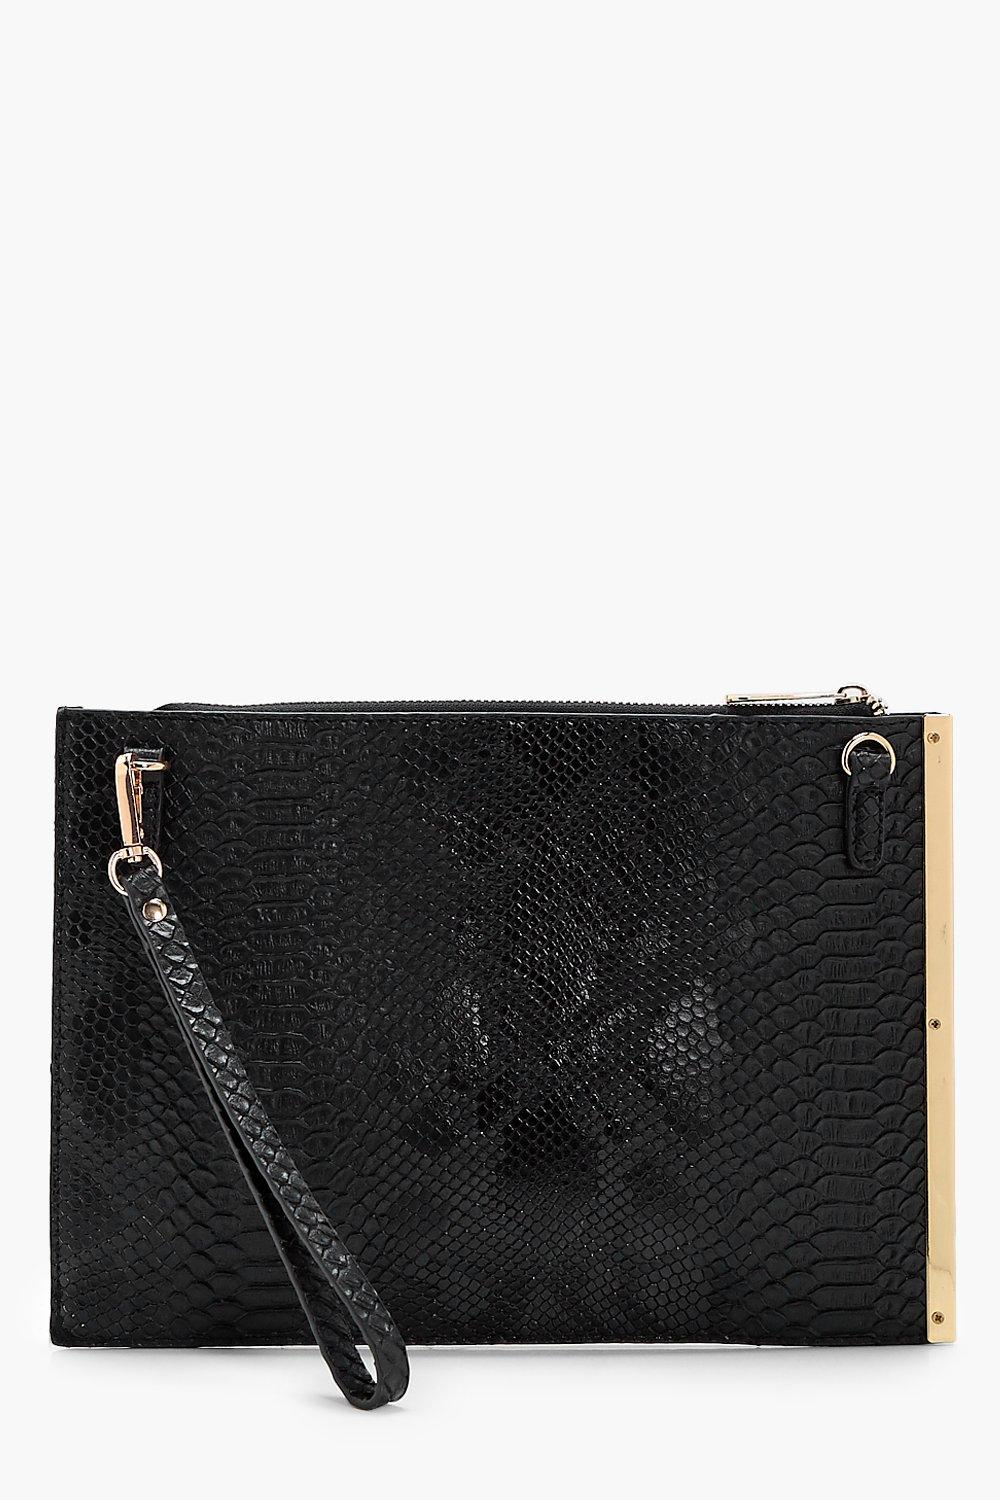 Bar Detail Snake Clutch - black - Imogen Bar Detai